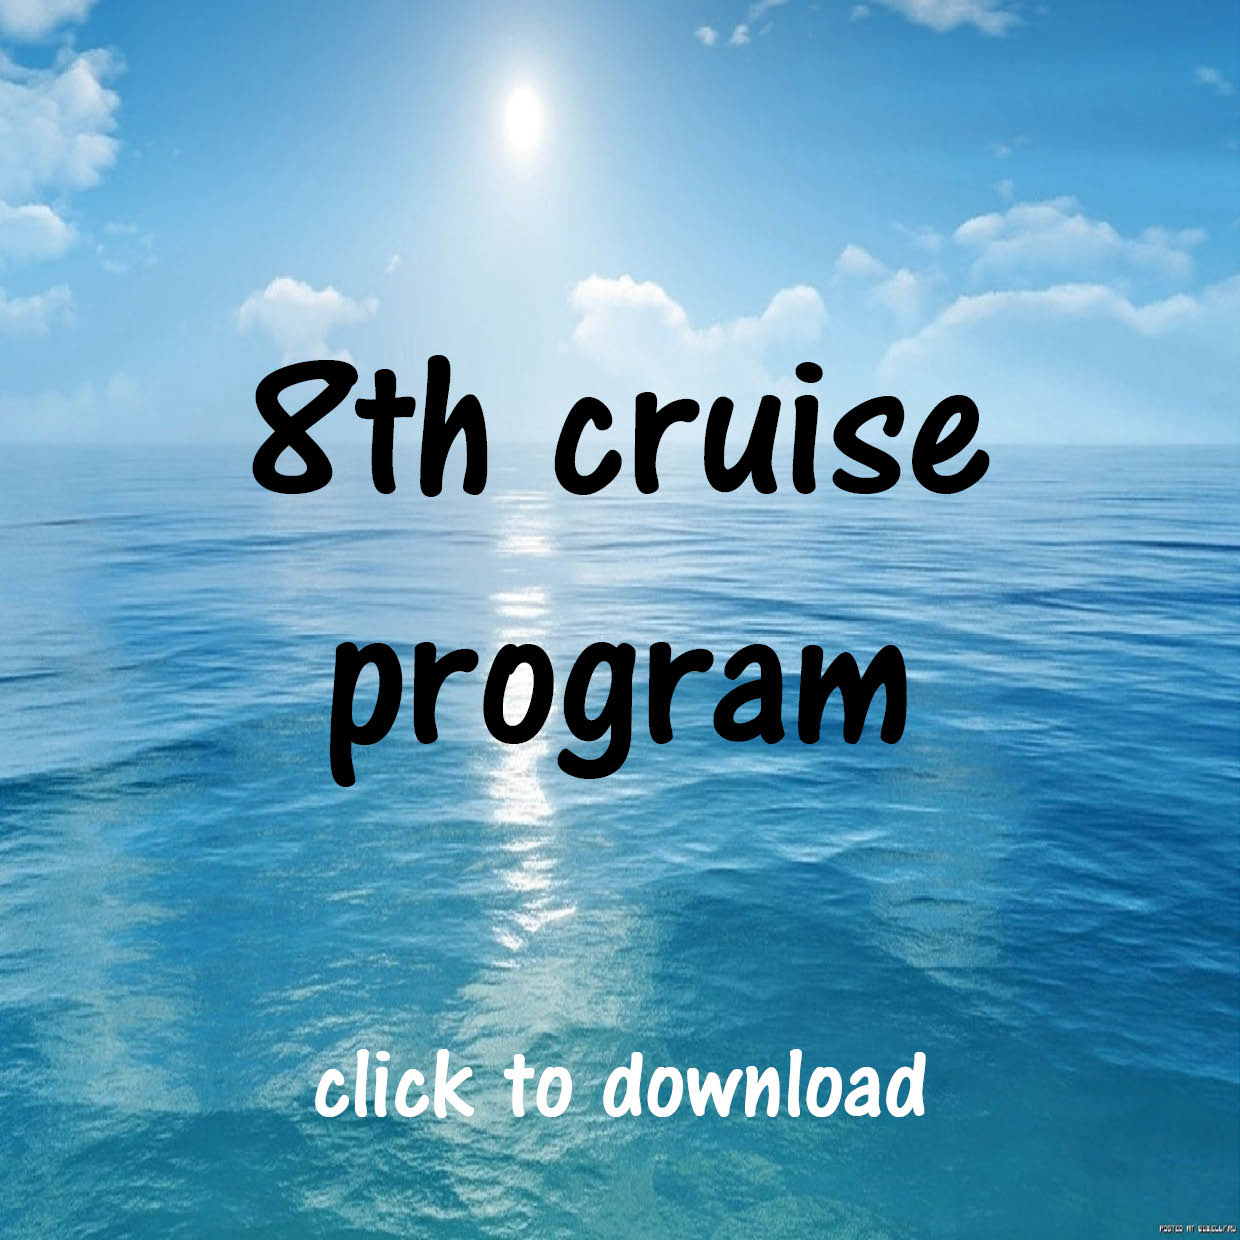 8th-cruise program-graphic